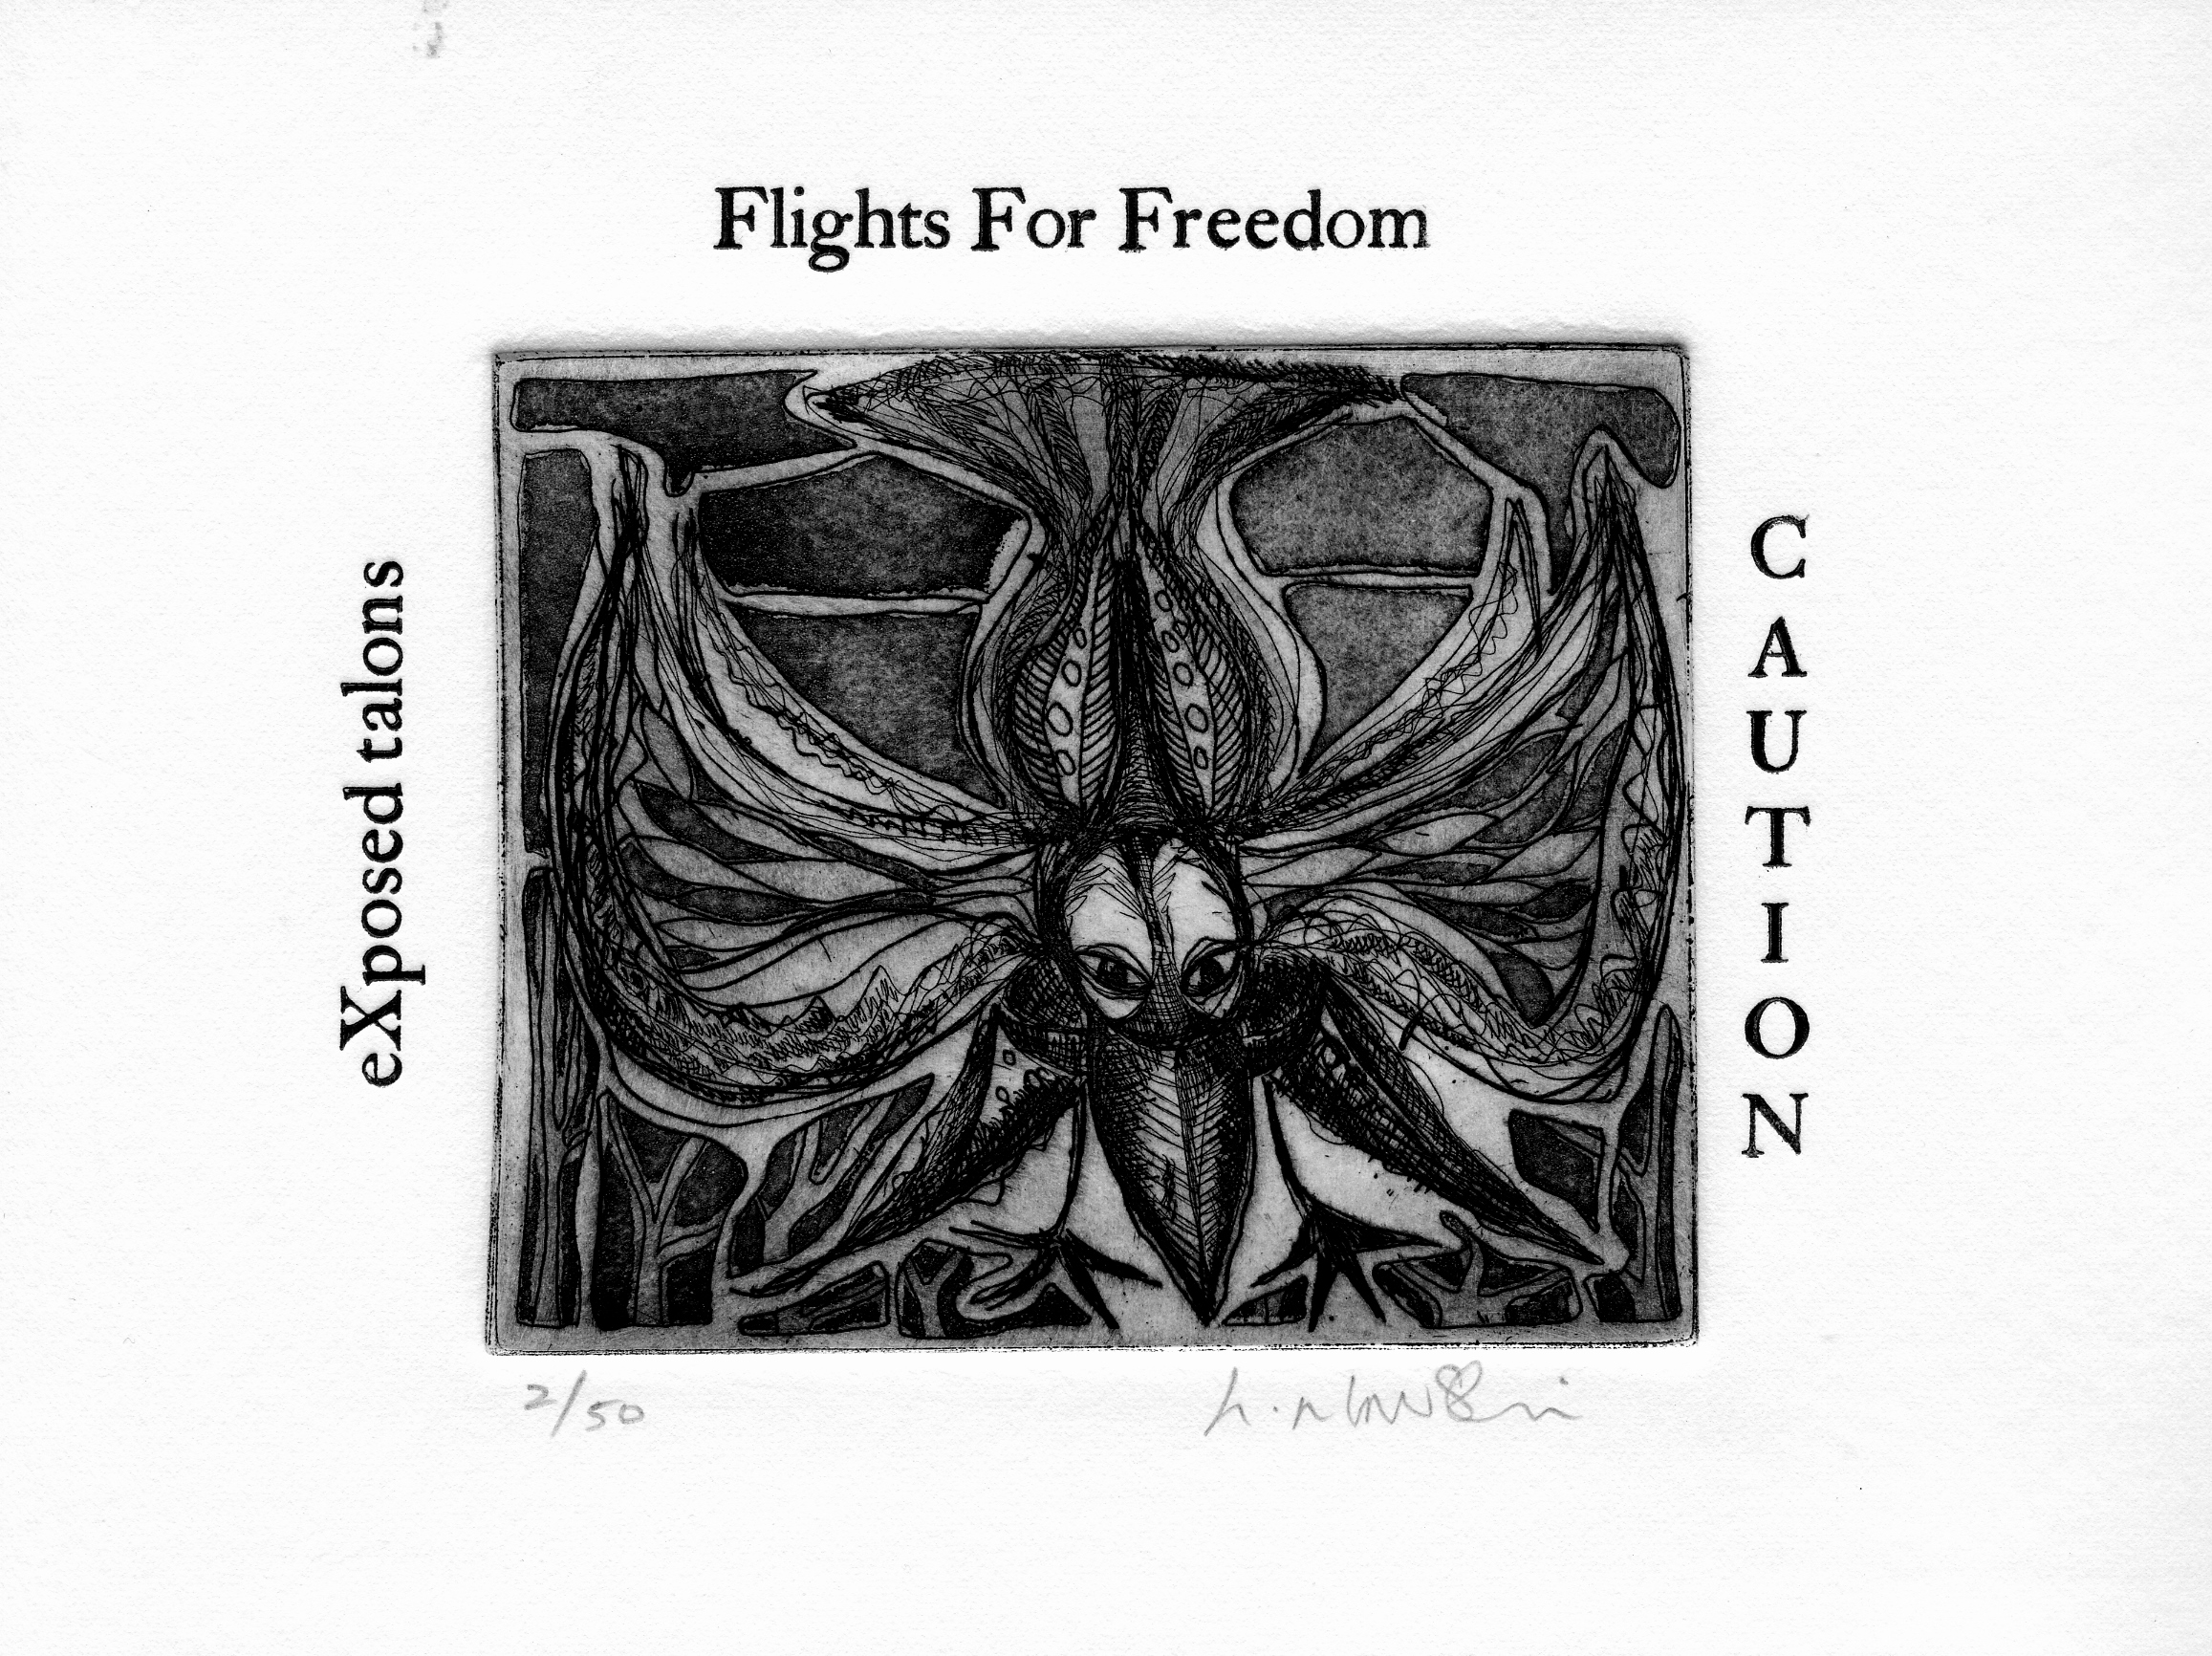 Flights-for-Freedom_-intaglio-and-typeset-limited-edition, by the artist Helena Orlowski